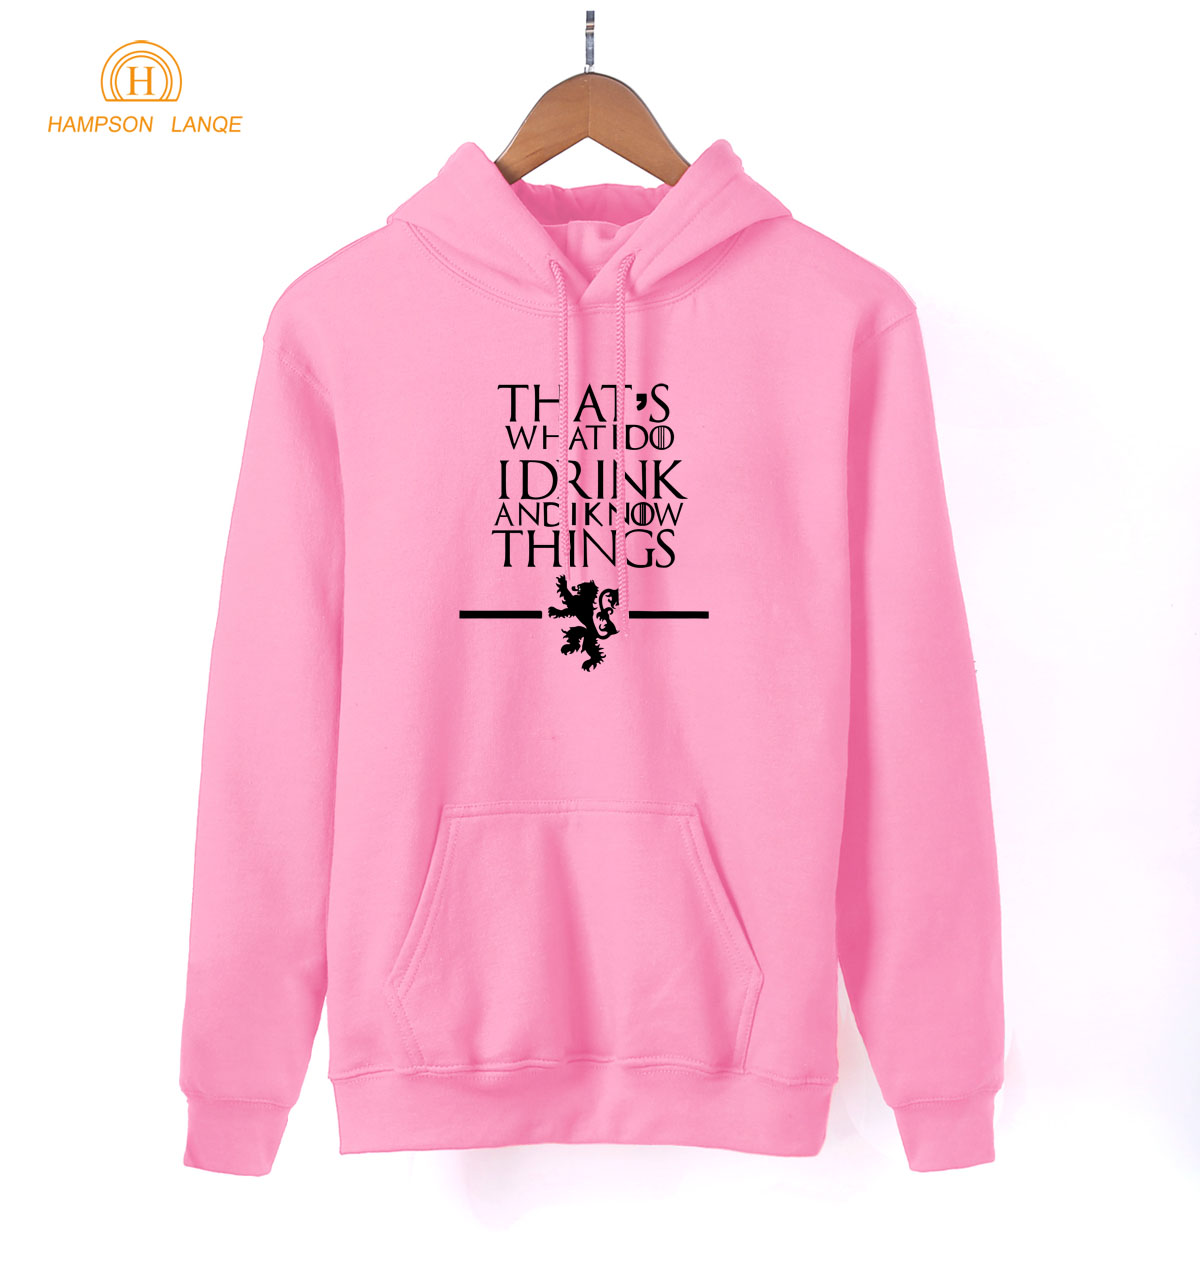 Game Of Thrones Lannister That's What I Do , I Drink and I know Things Print Movie Hoodies 2019 Spring Hot Sale Sweatshirt Women image